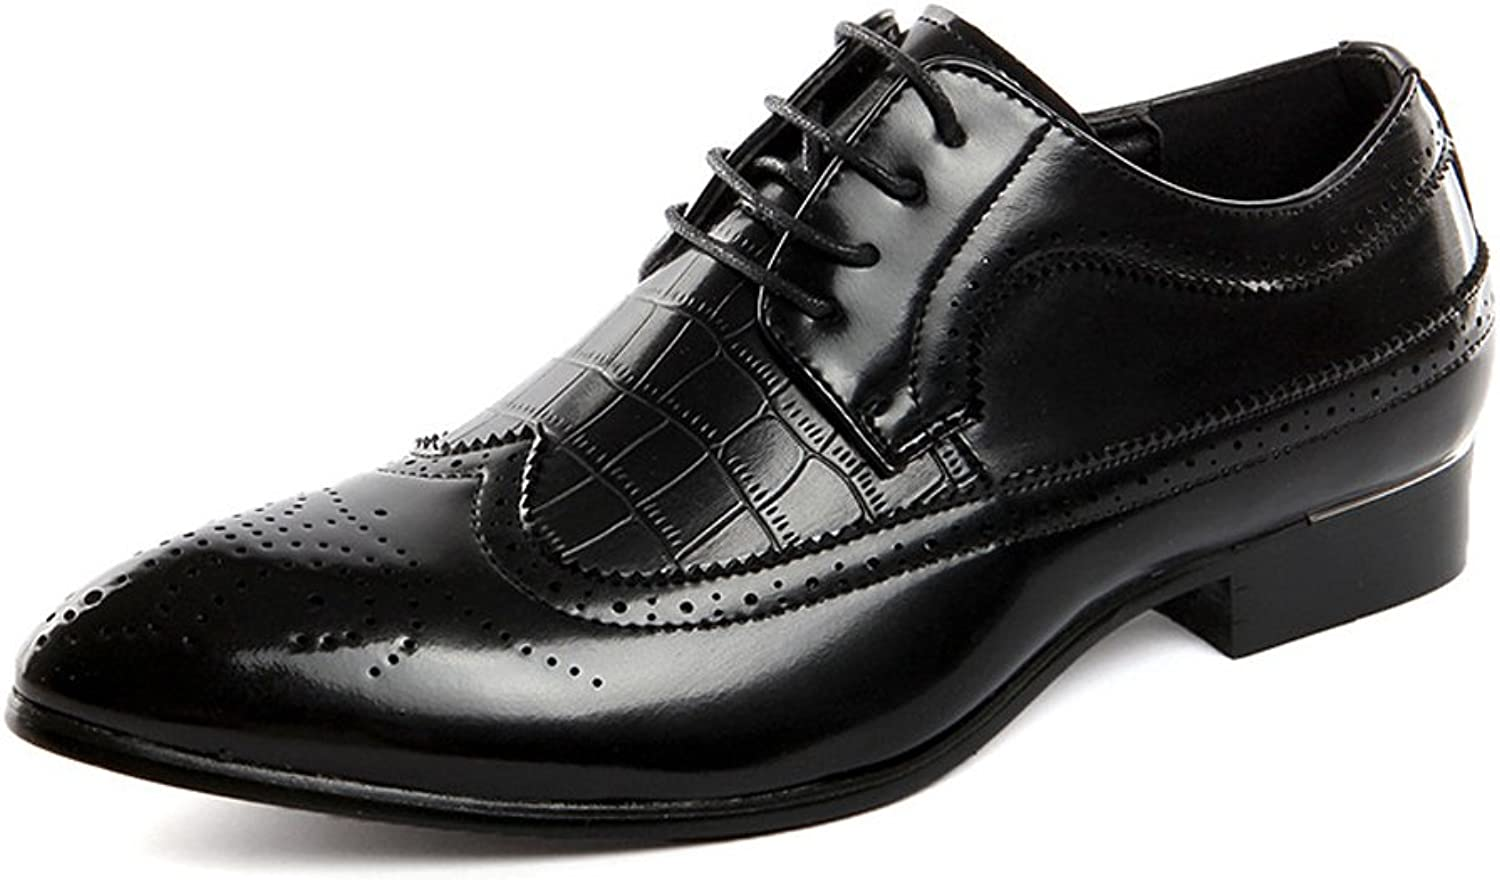 Men's Brogue shoes Classic Hollow Carving Splice PU Leather Wingtip Lace Up Lined Oxfords (color   Black, Size   9 UK)